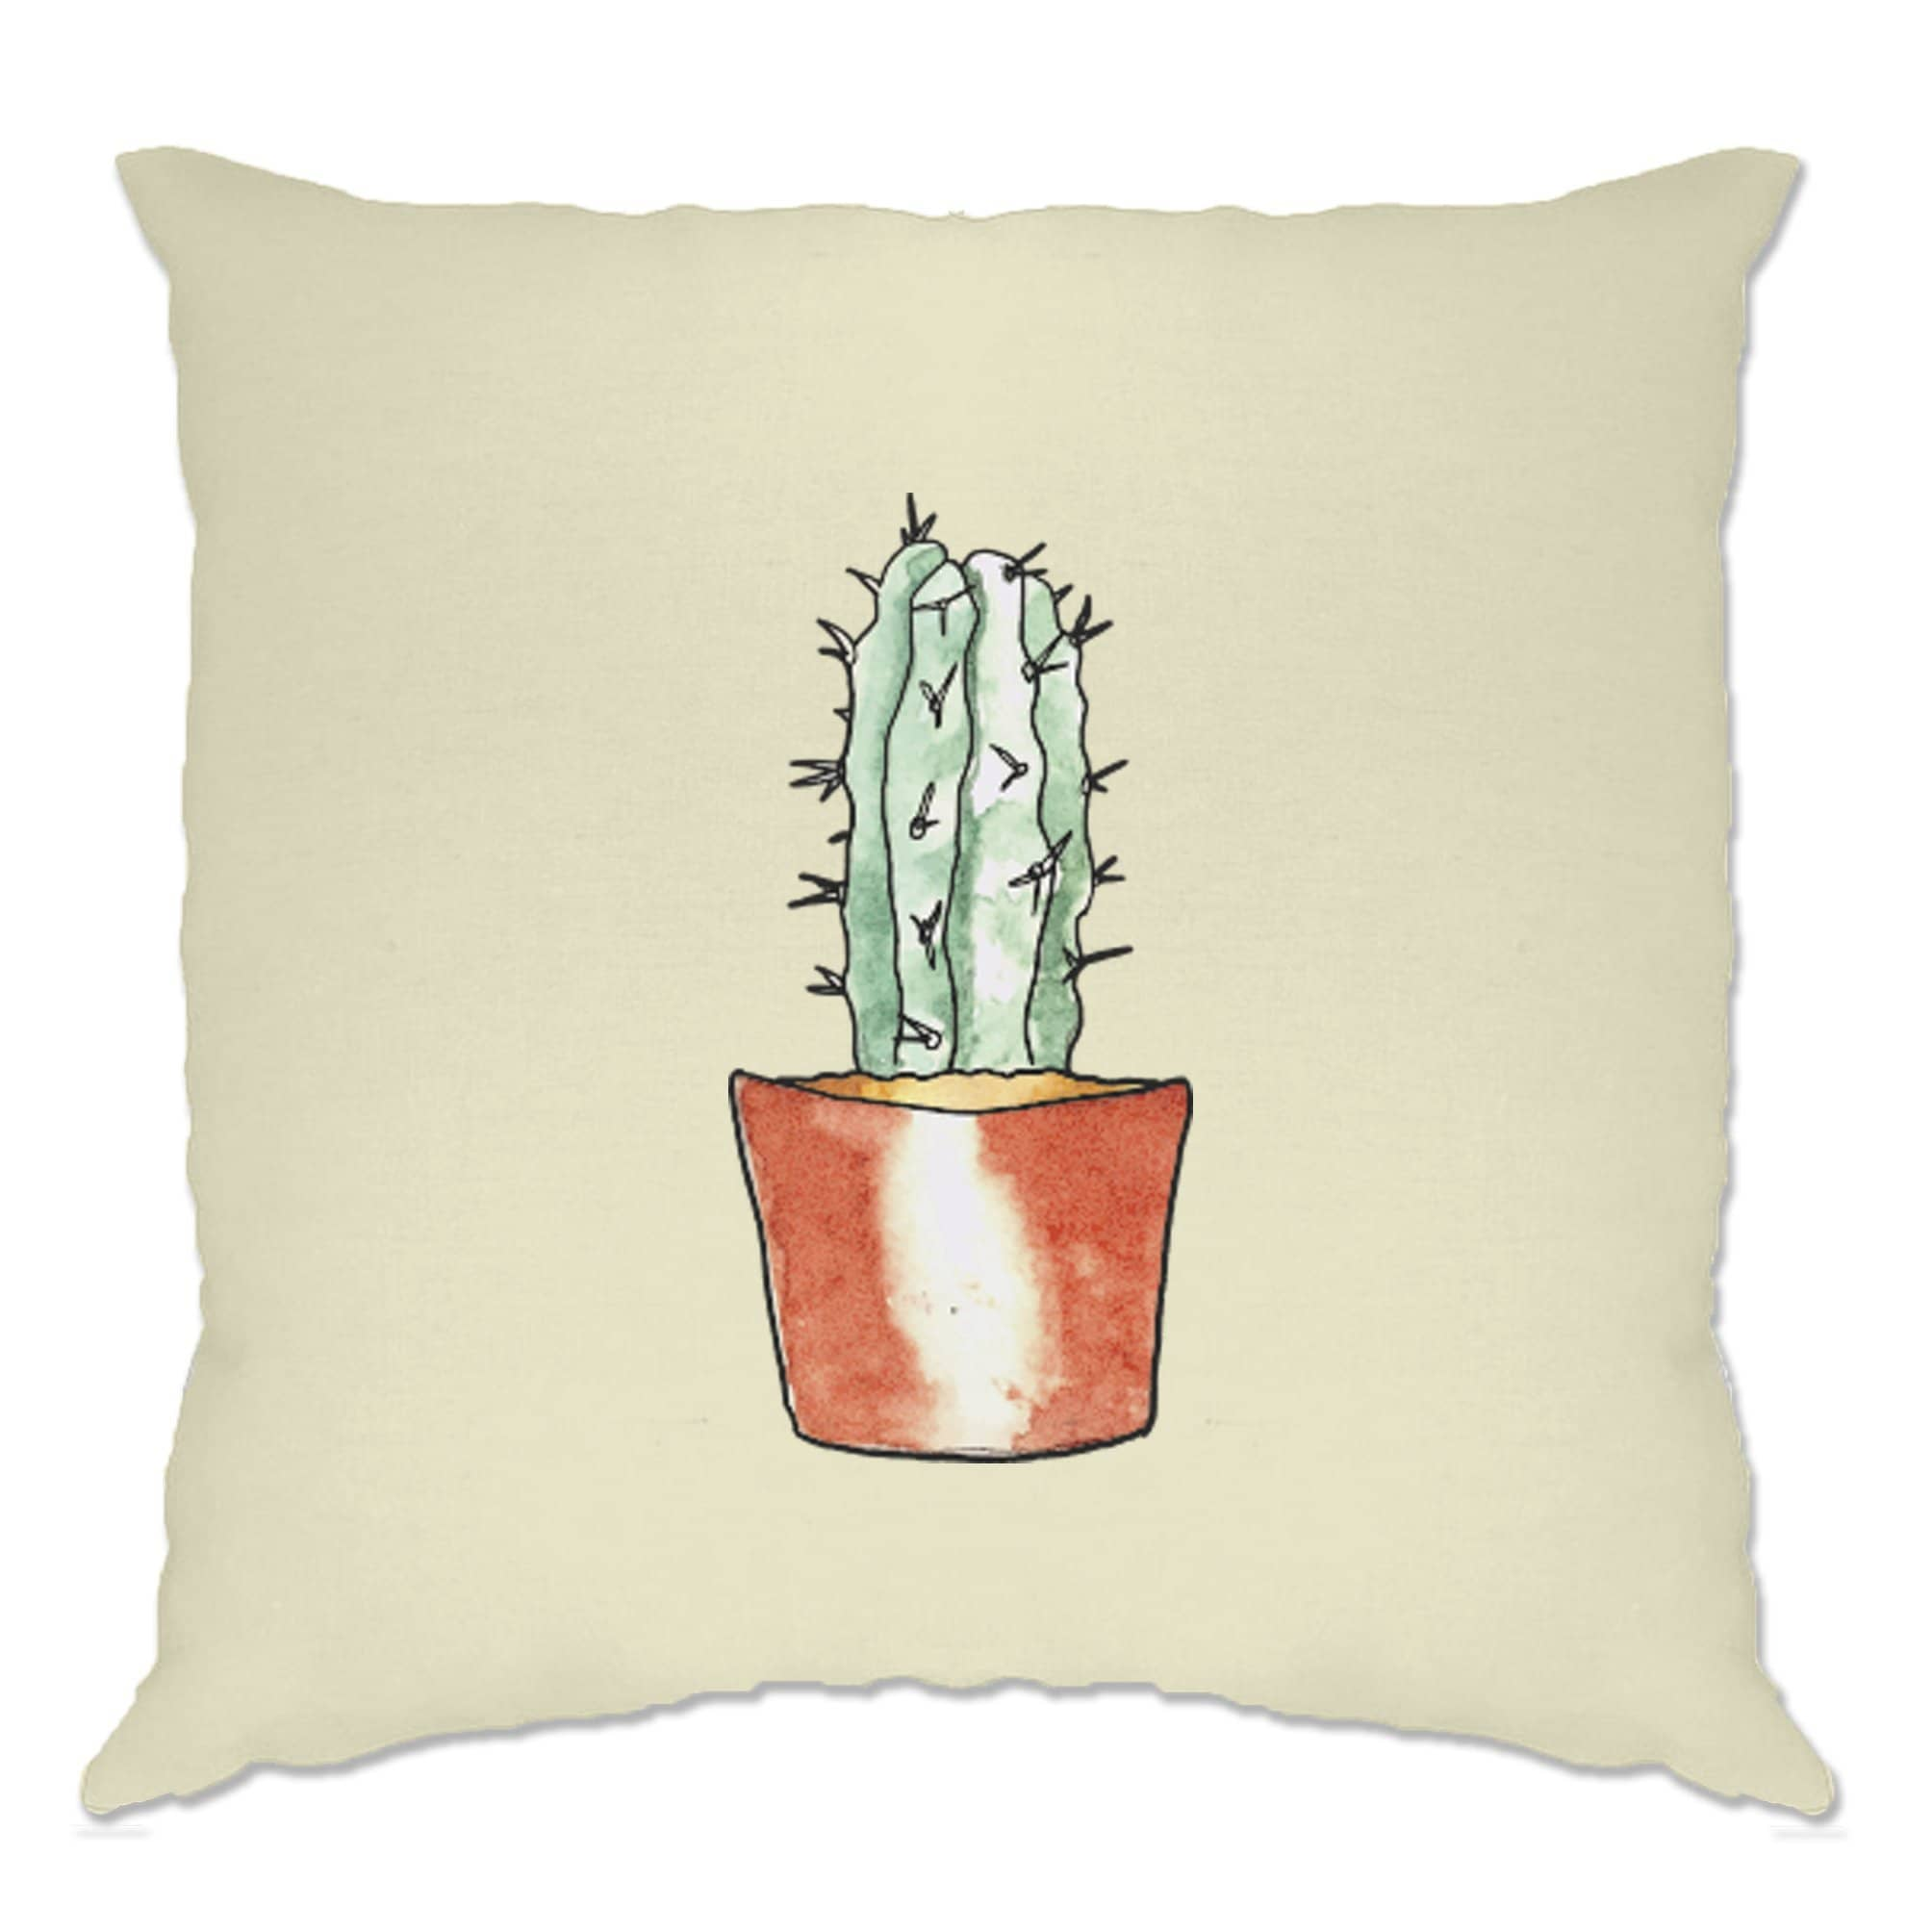 Cute Plant Cushion Cover Drawn Cactus Art Pocket Print